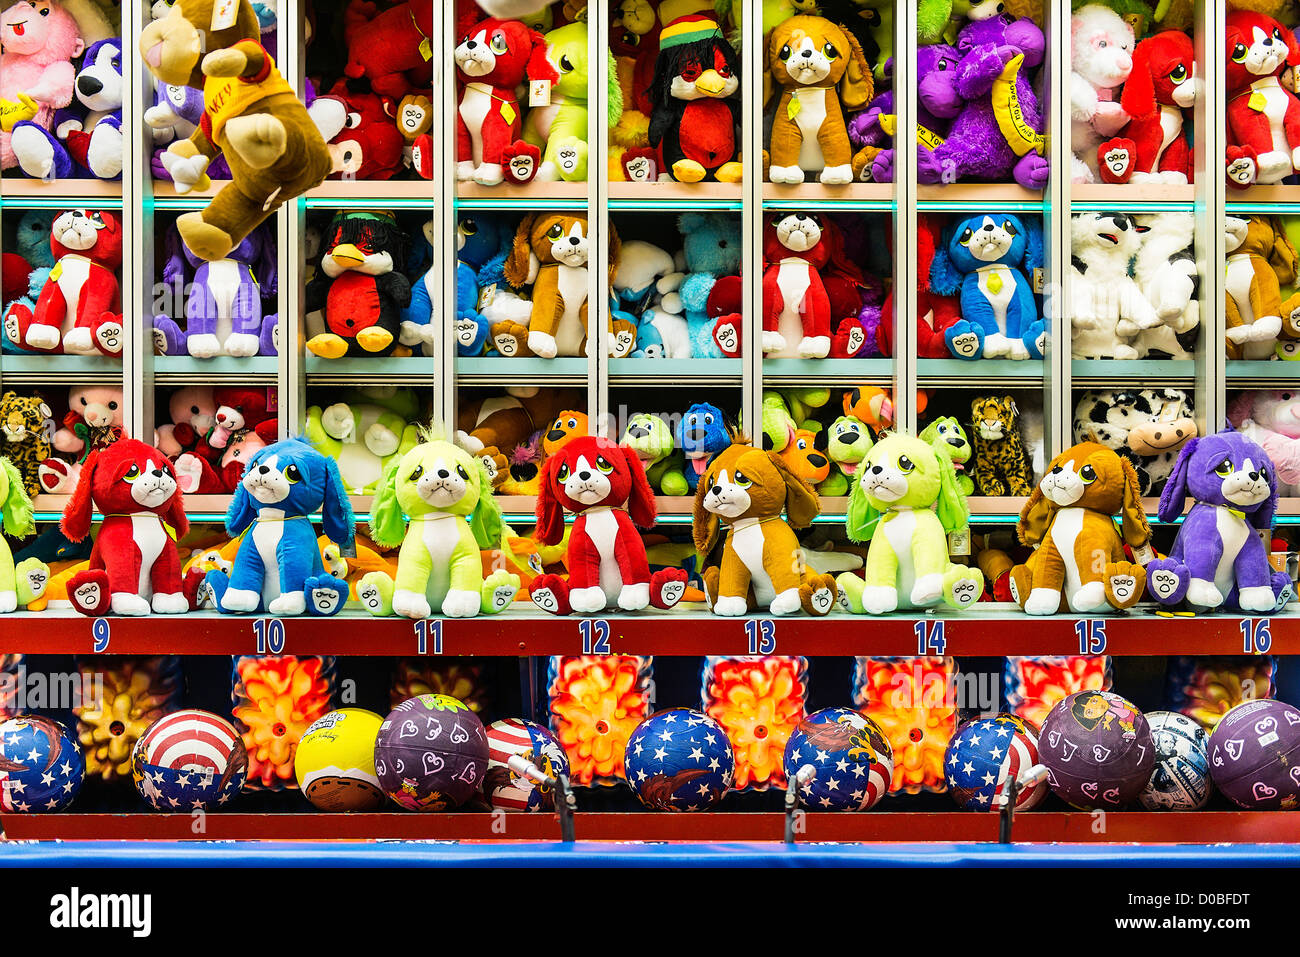 Toy Raffle Prizes : Stuffed animals prizes at a carnival booth game stock